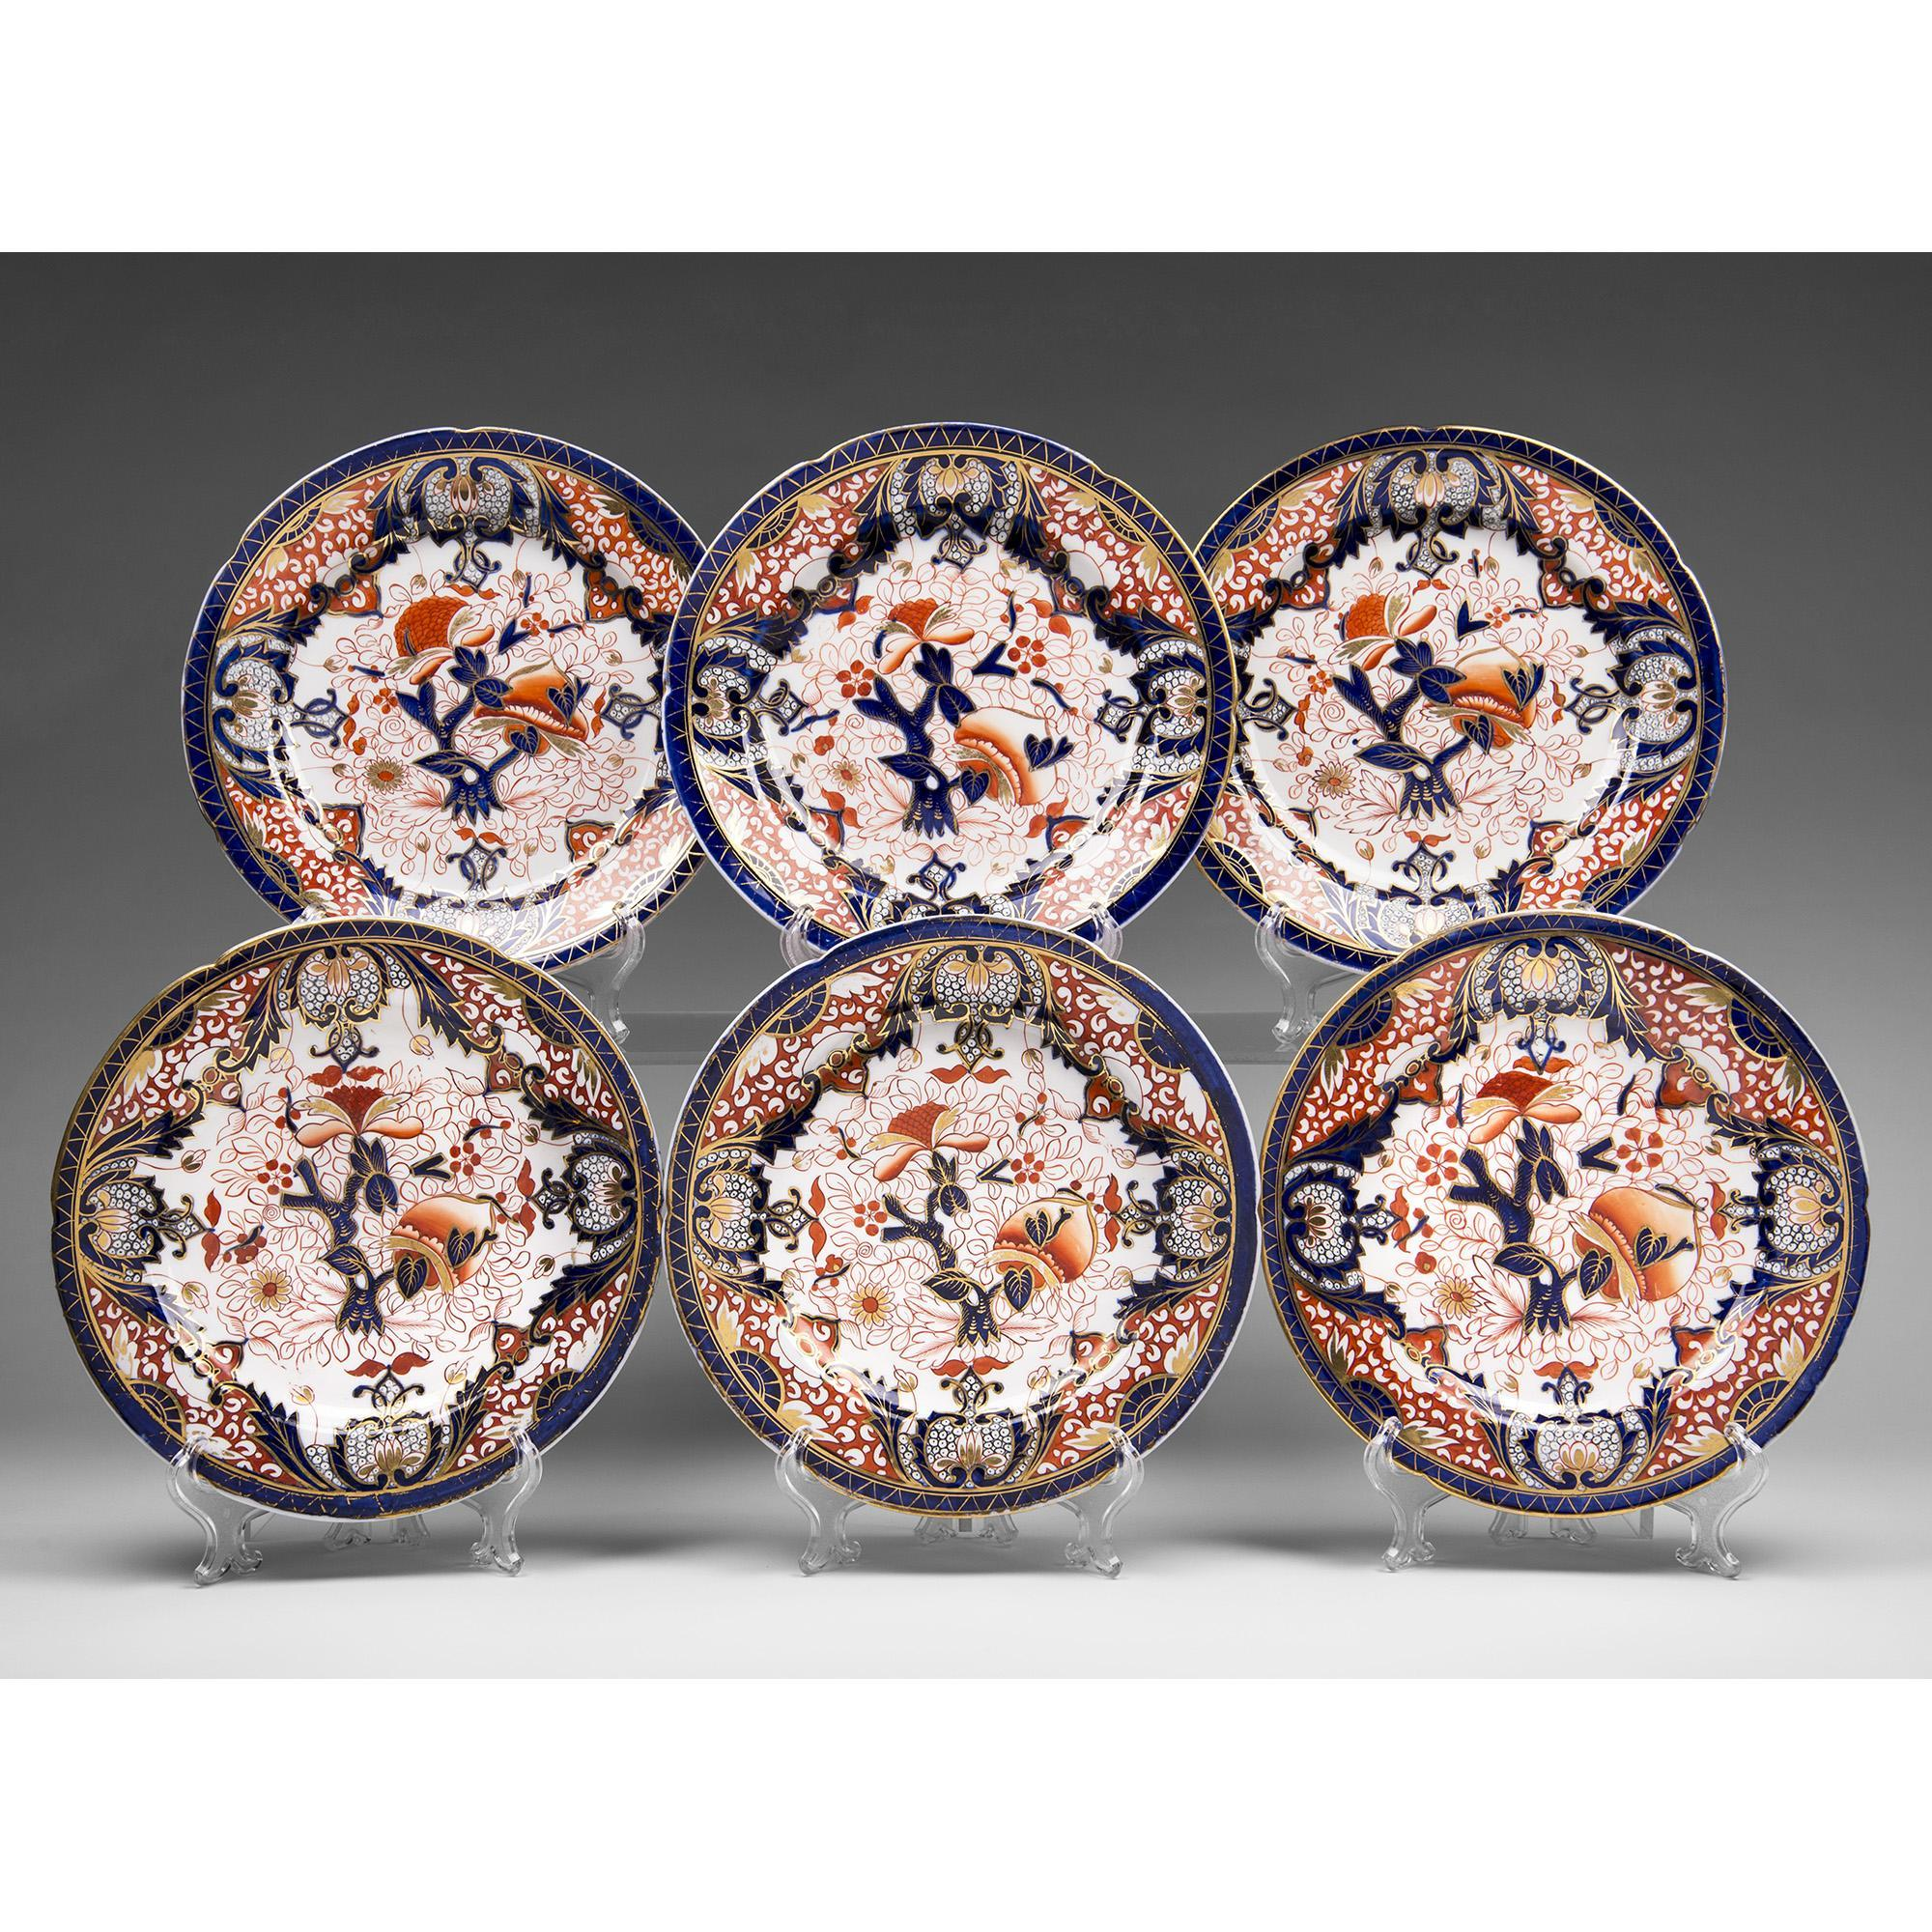 Set of 6 English Ironstone Imari Dinner Plates, 19th C